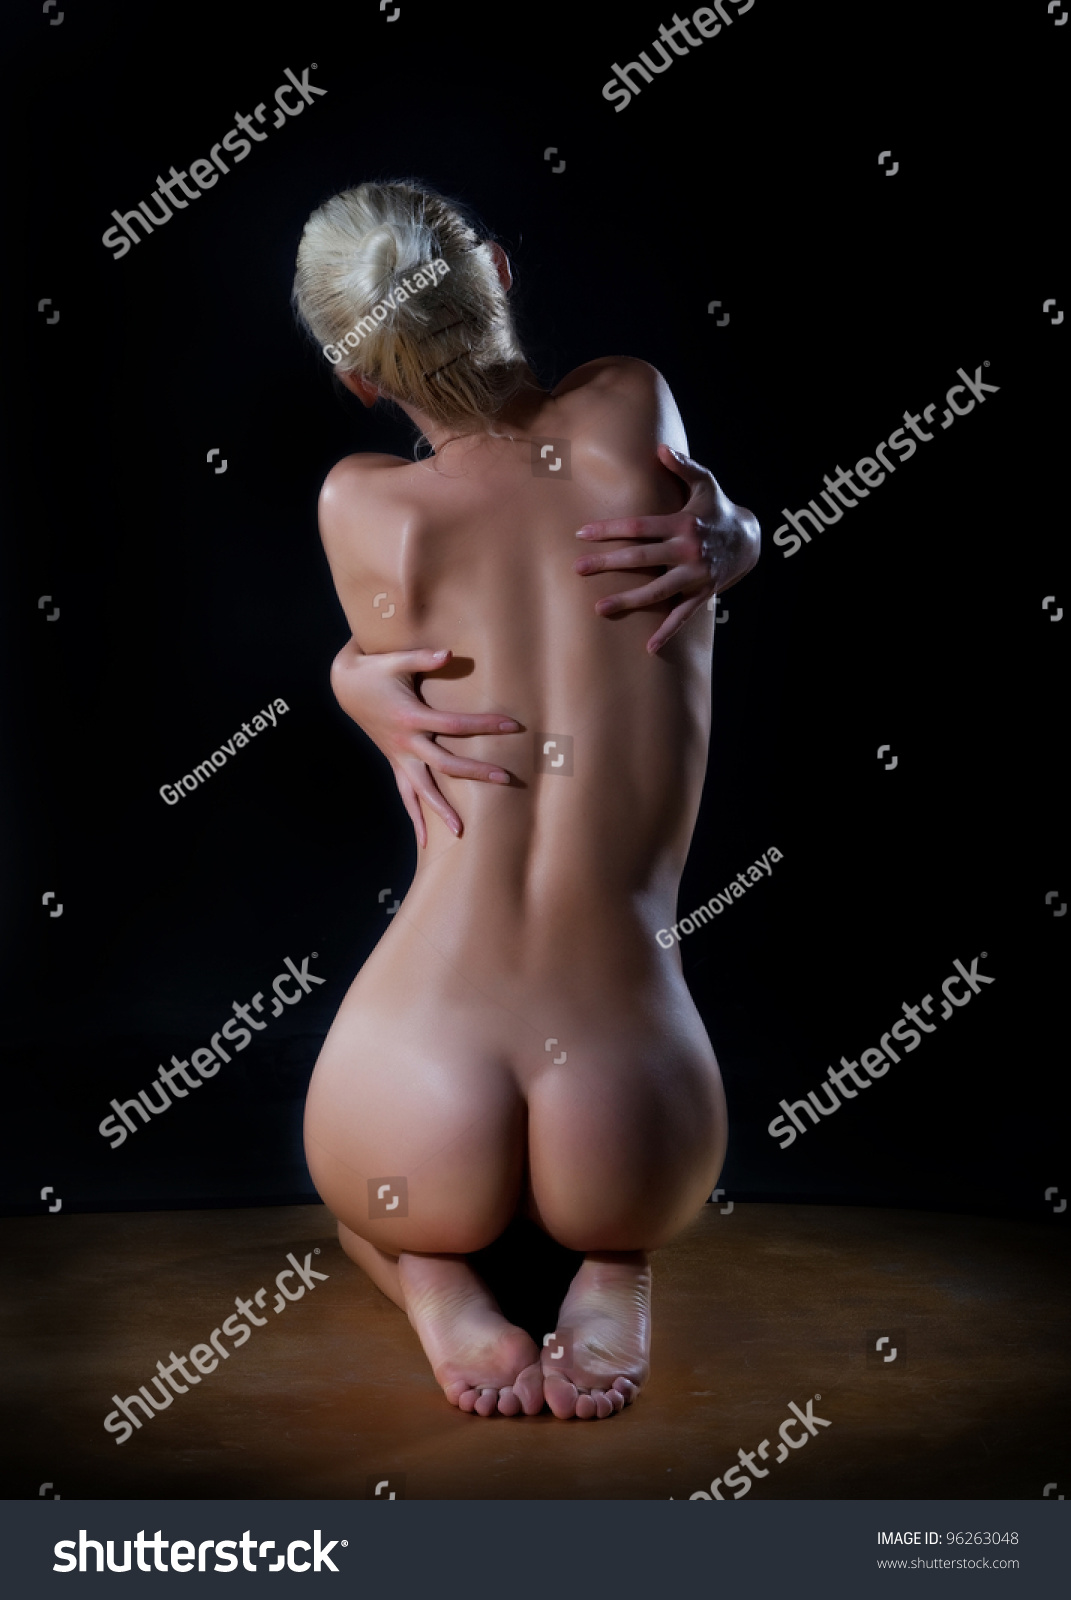 Female Beautiful Nude Woman Hugging Her Stock Photo -3875